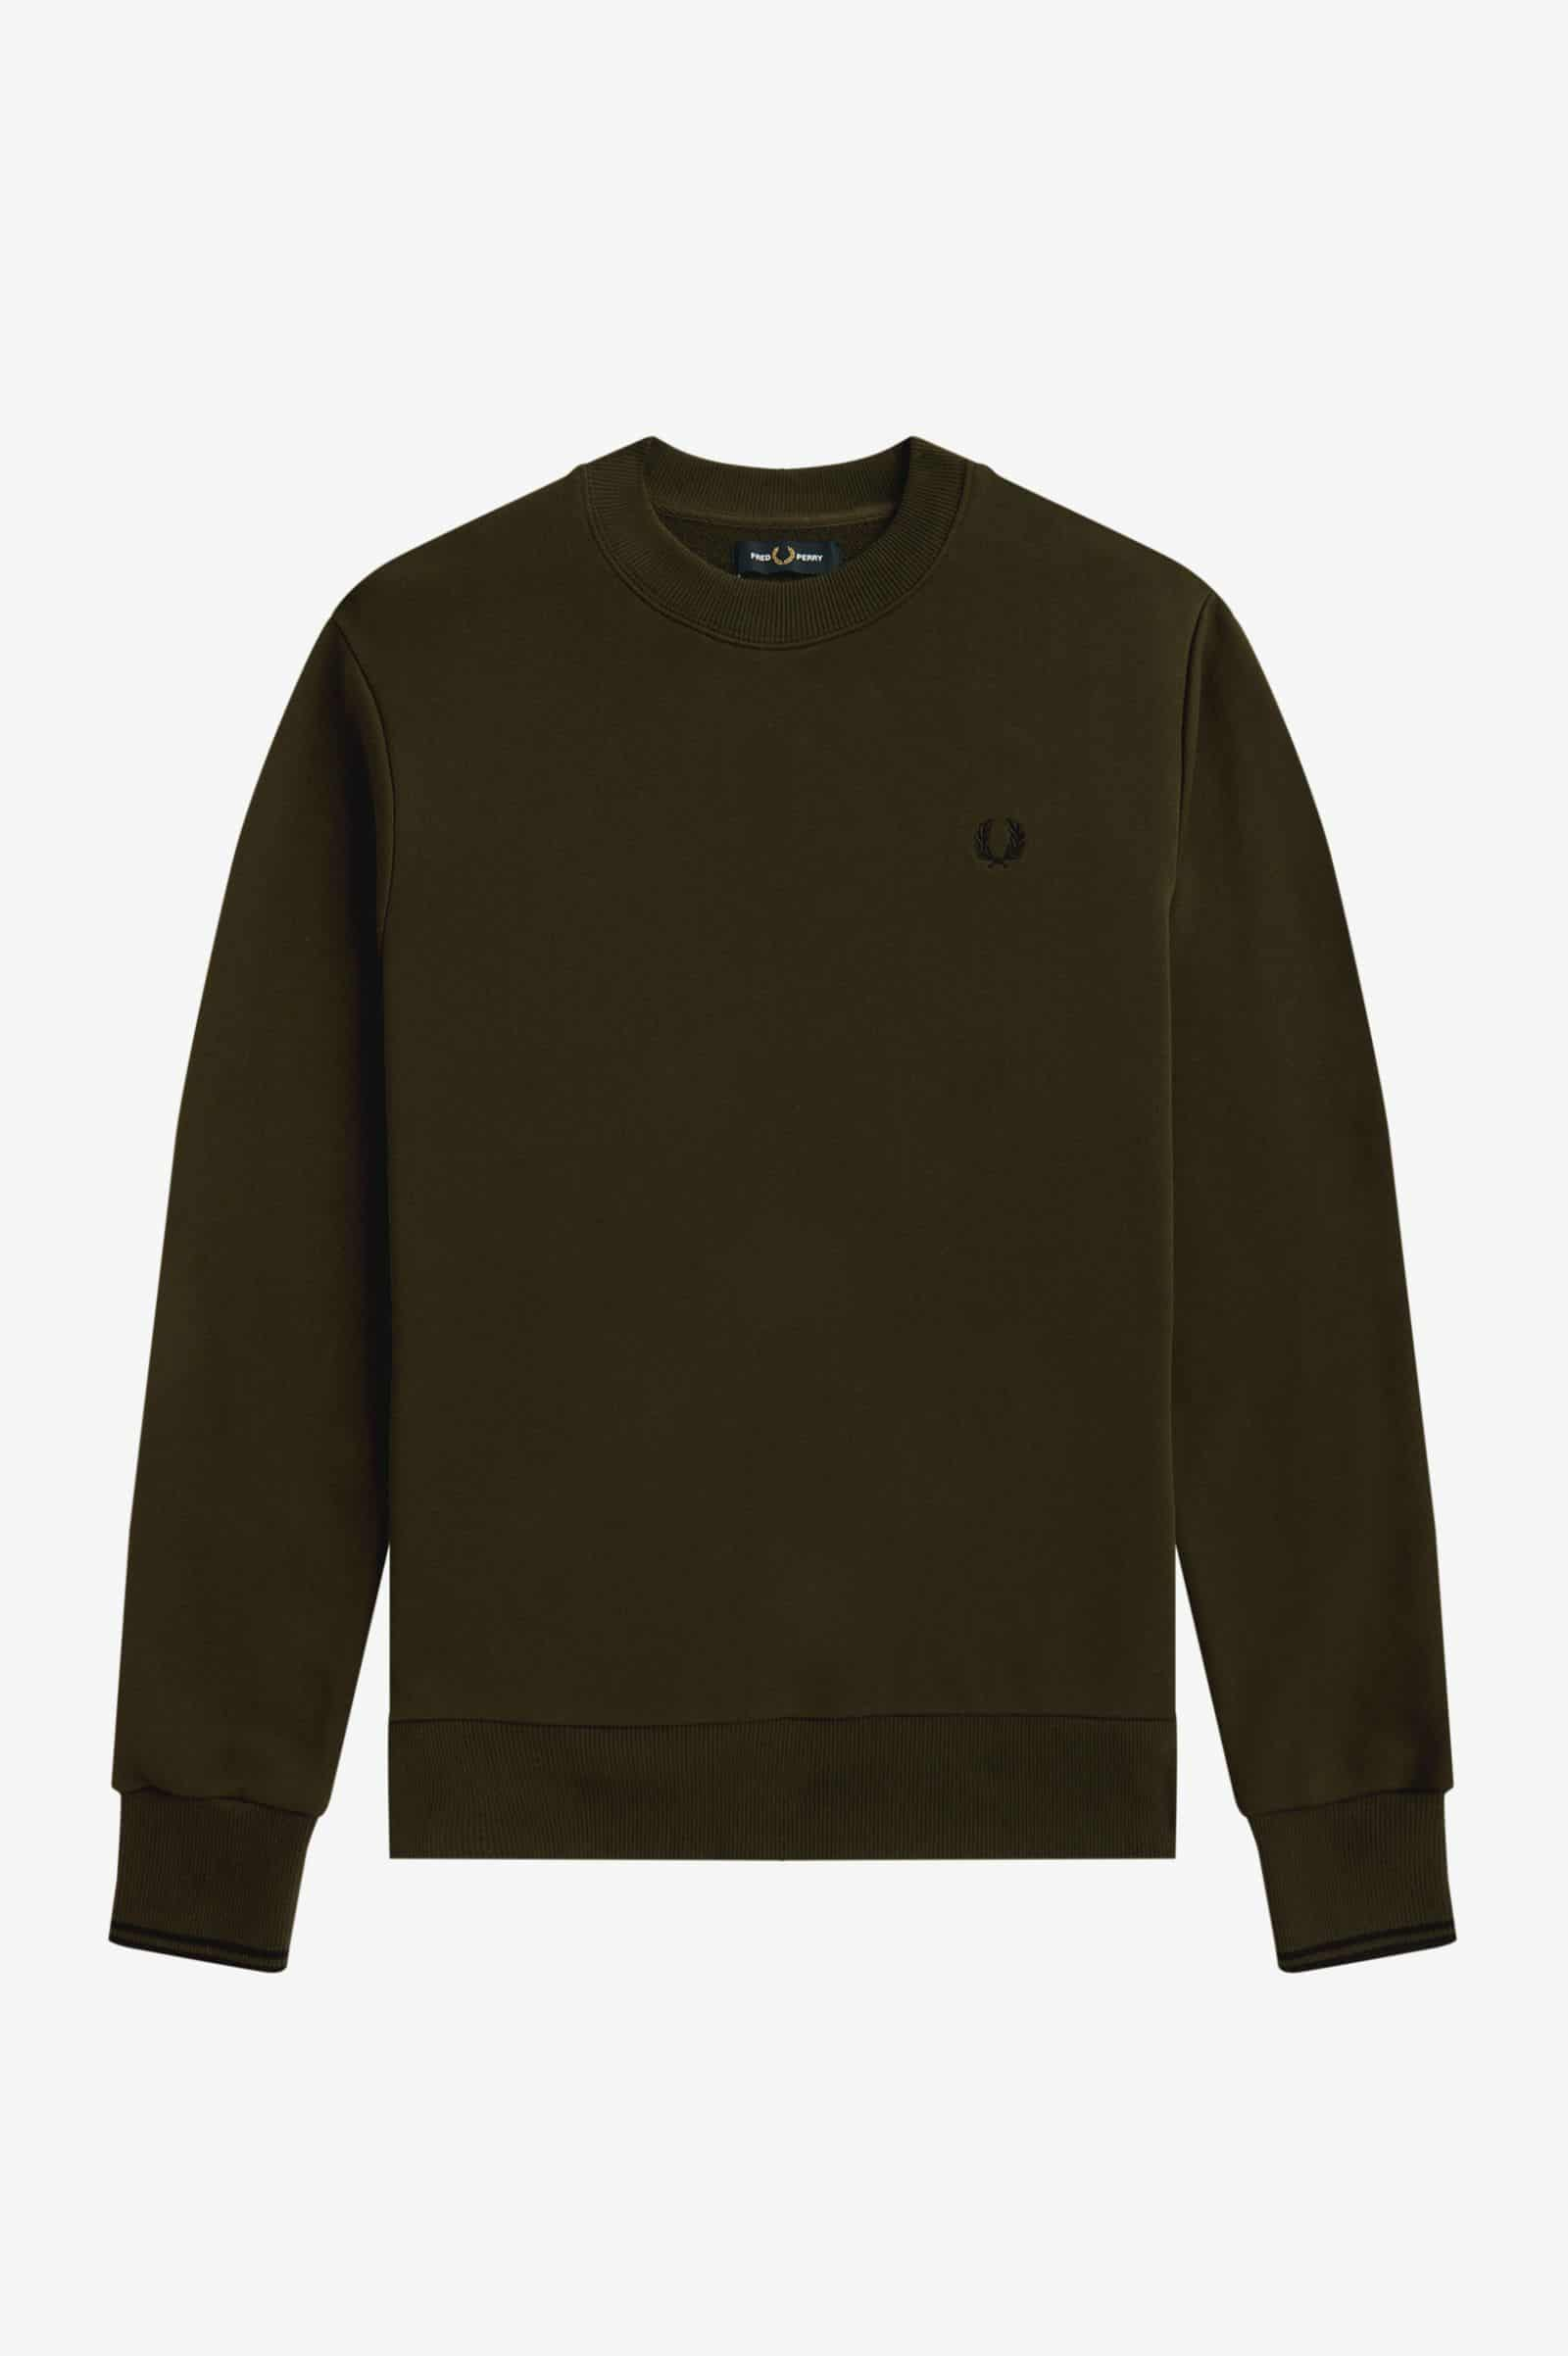 Fred Perry Crew Neck Sweatshirt Hunting Green